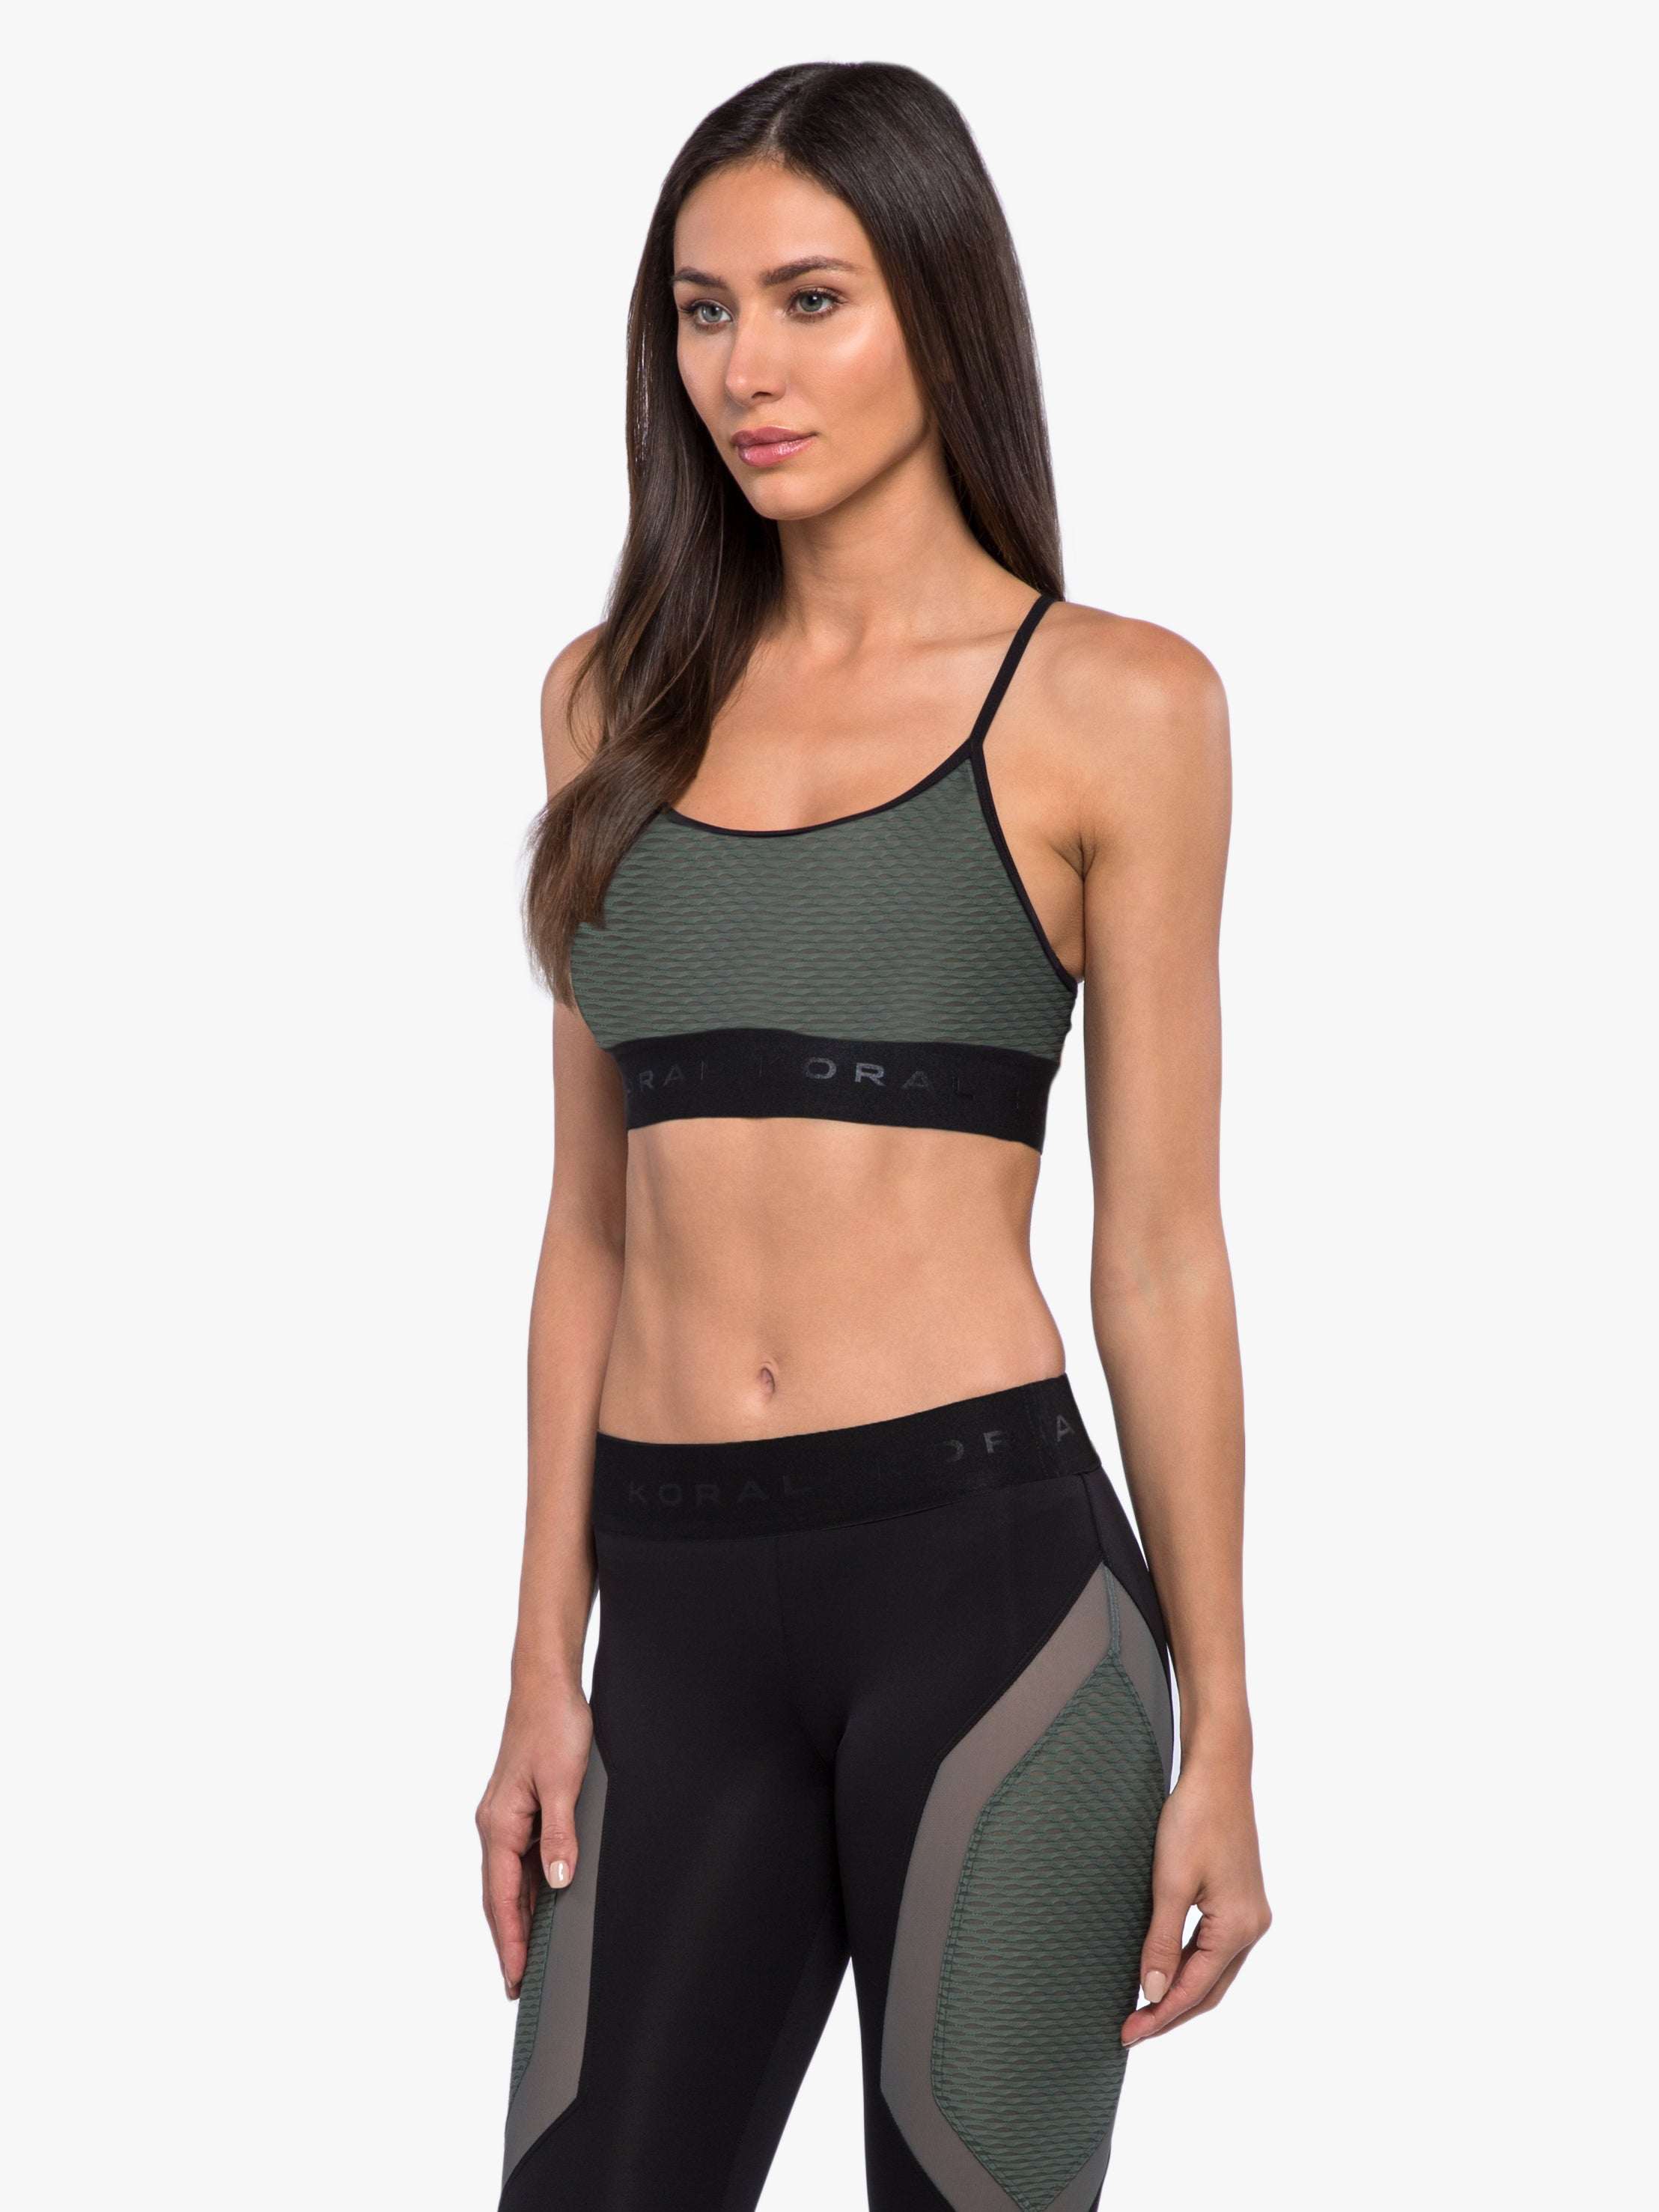 Sweeper Netz Sports Bra - Agave